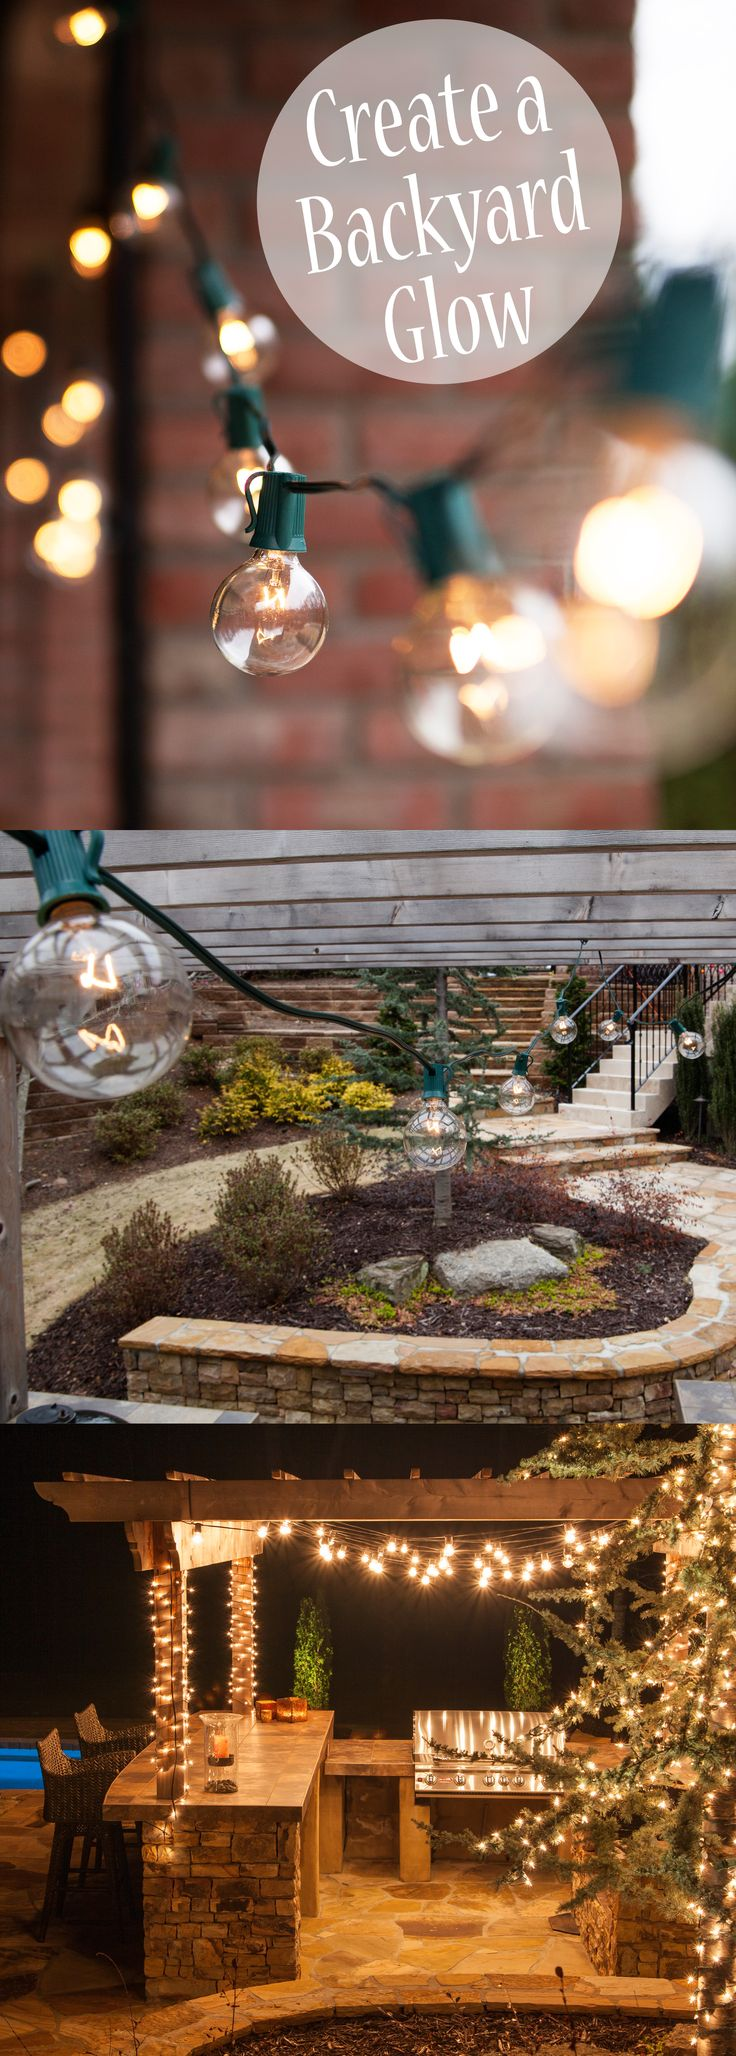 Outdoor String Lights Summer : 1000+ ideas about Patio String Lights on Pinterest String lights outdoor, String lighting and ...